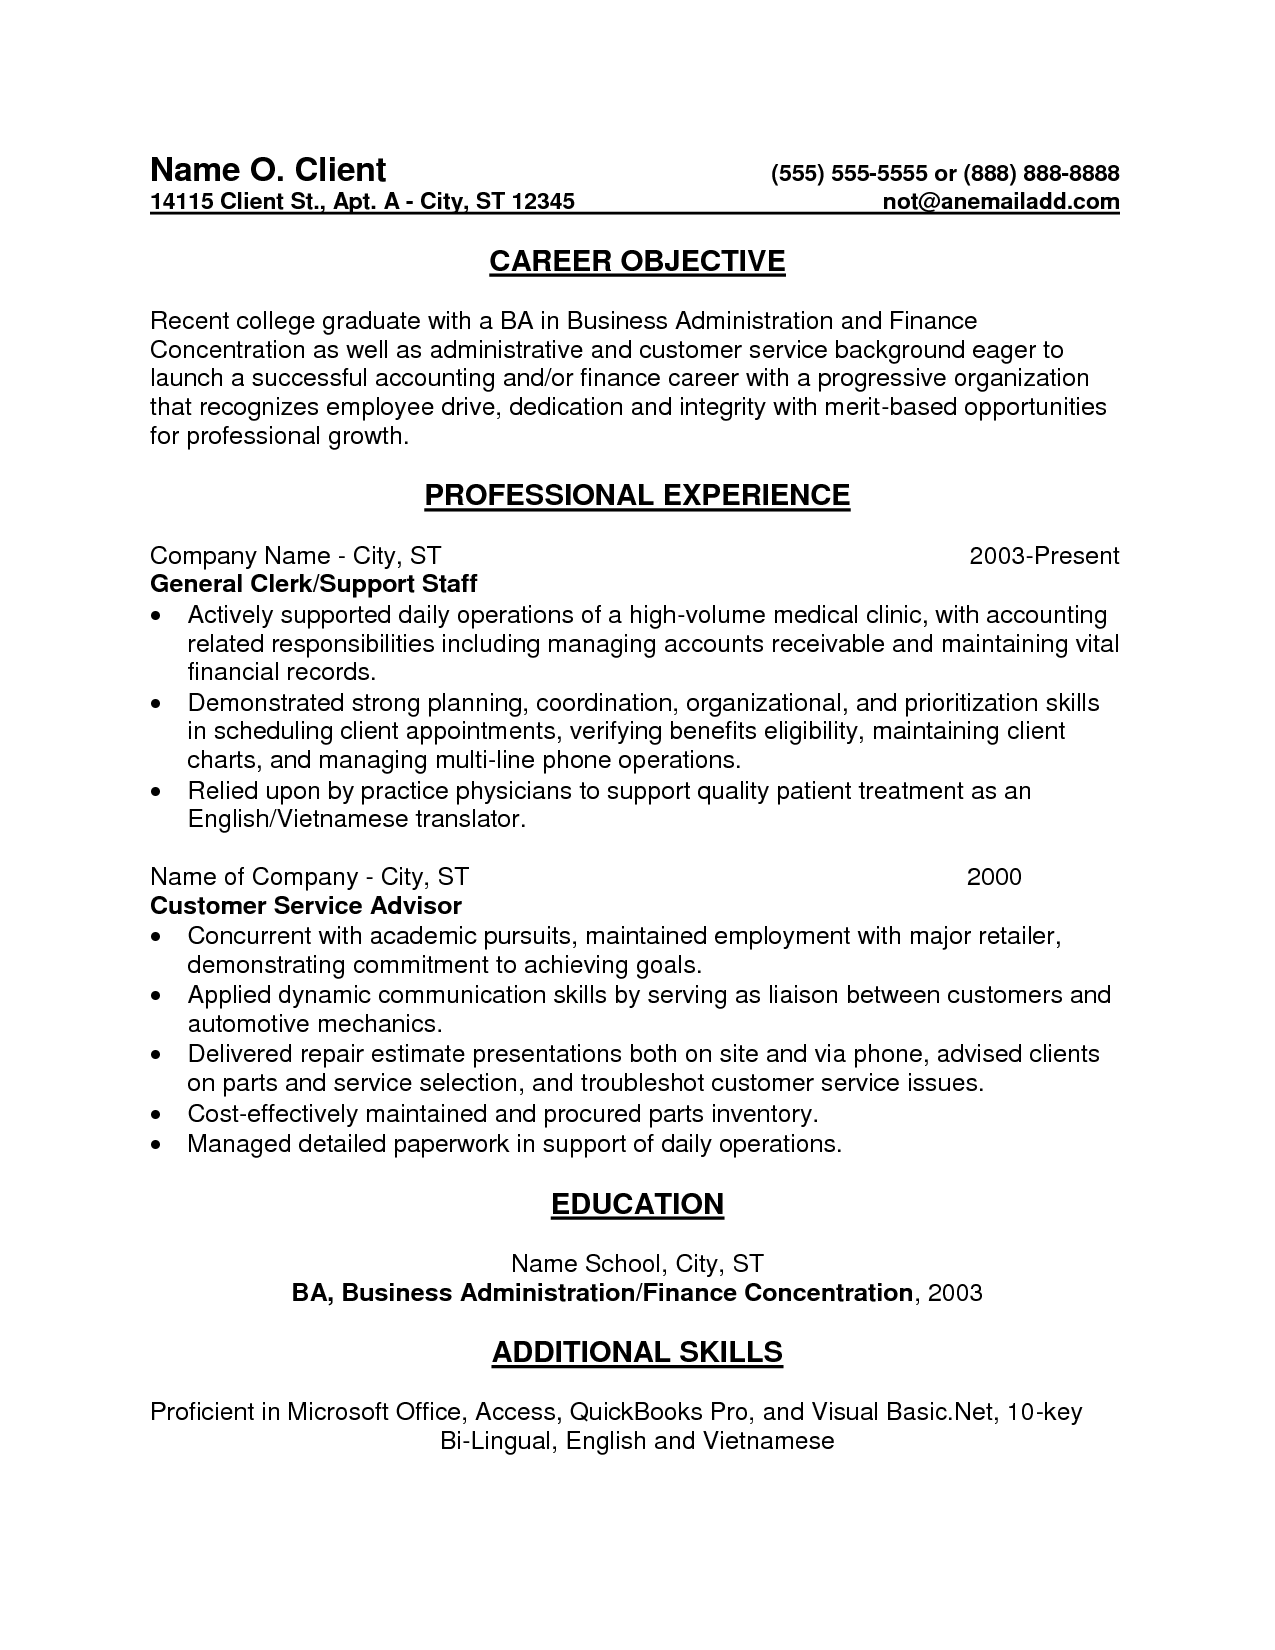 Entry Level Bookkeeper Resume Sample   Http://www.resumecareer.info/  Sample Resume Entry Level